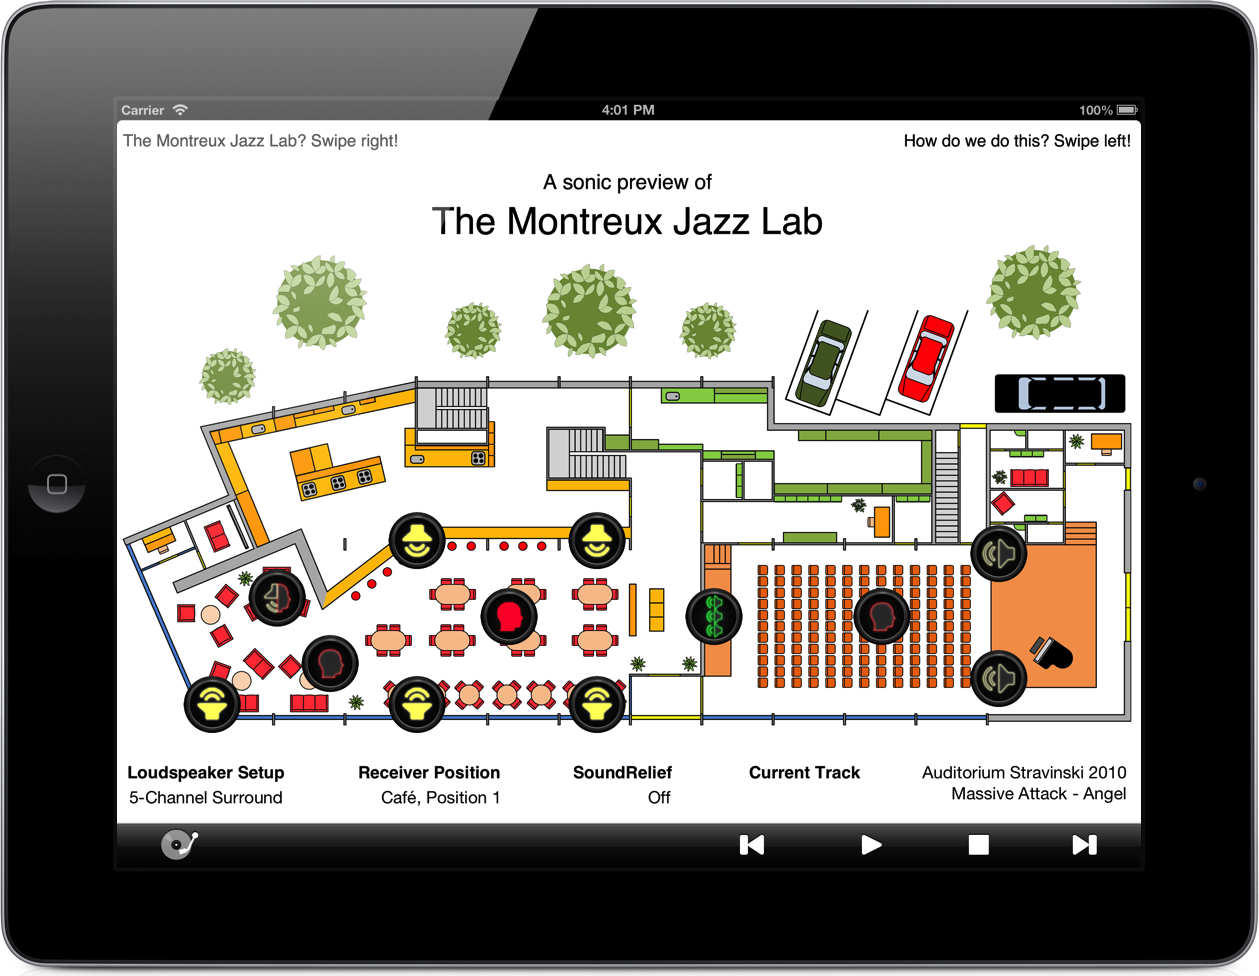 iPad Application for Sonic Preview of the Montreux Jazz Lab